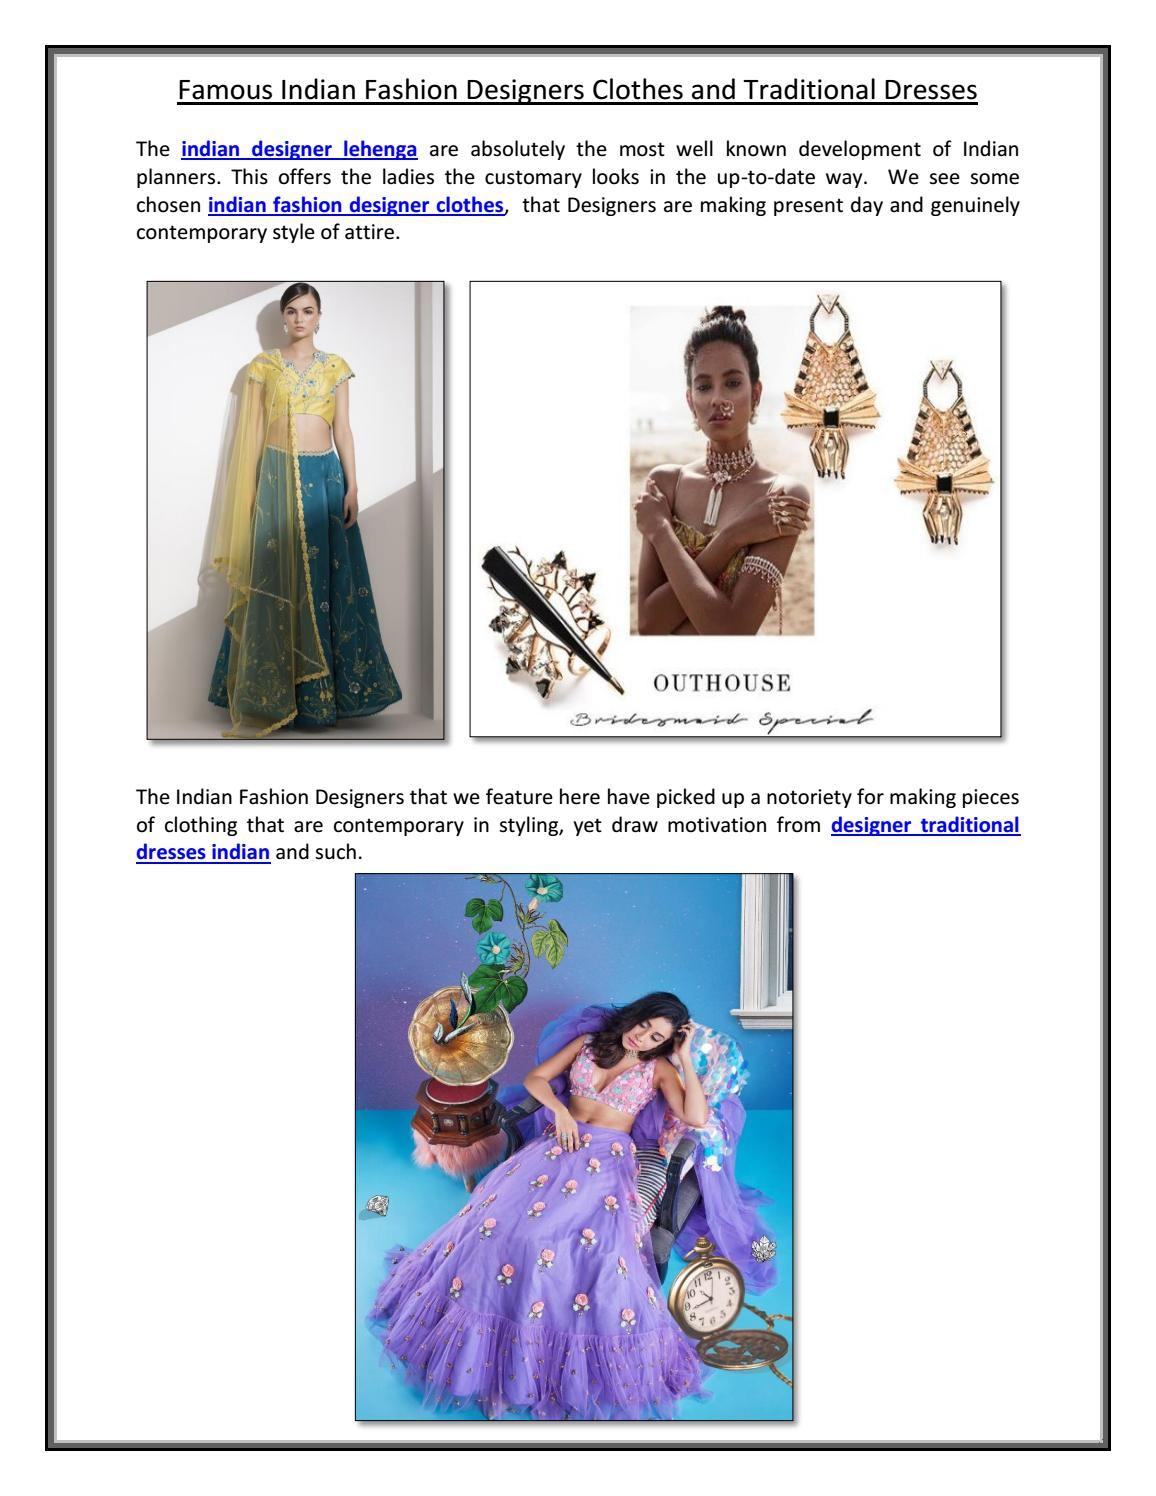 Famous Indian Fashion Designers Clothes And Traditional Dresses By Indias Popup Issuu